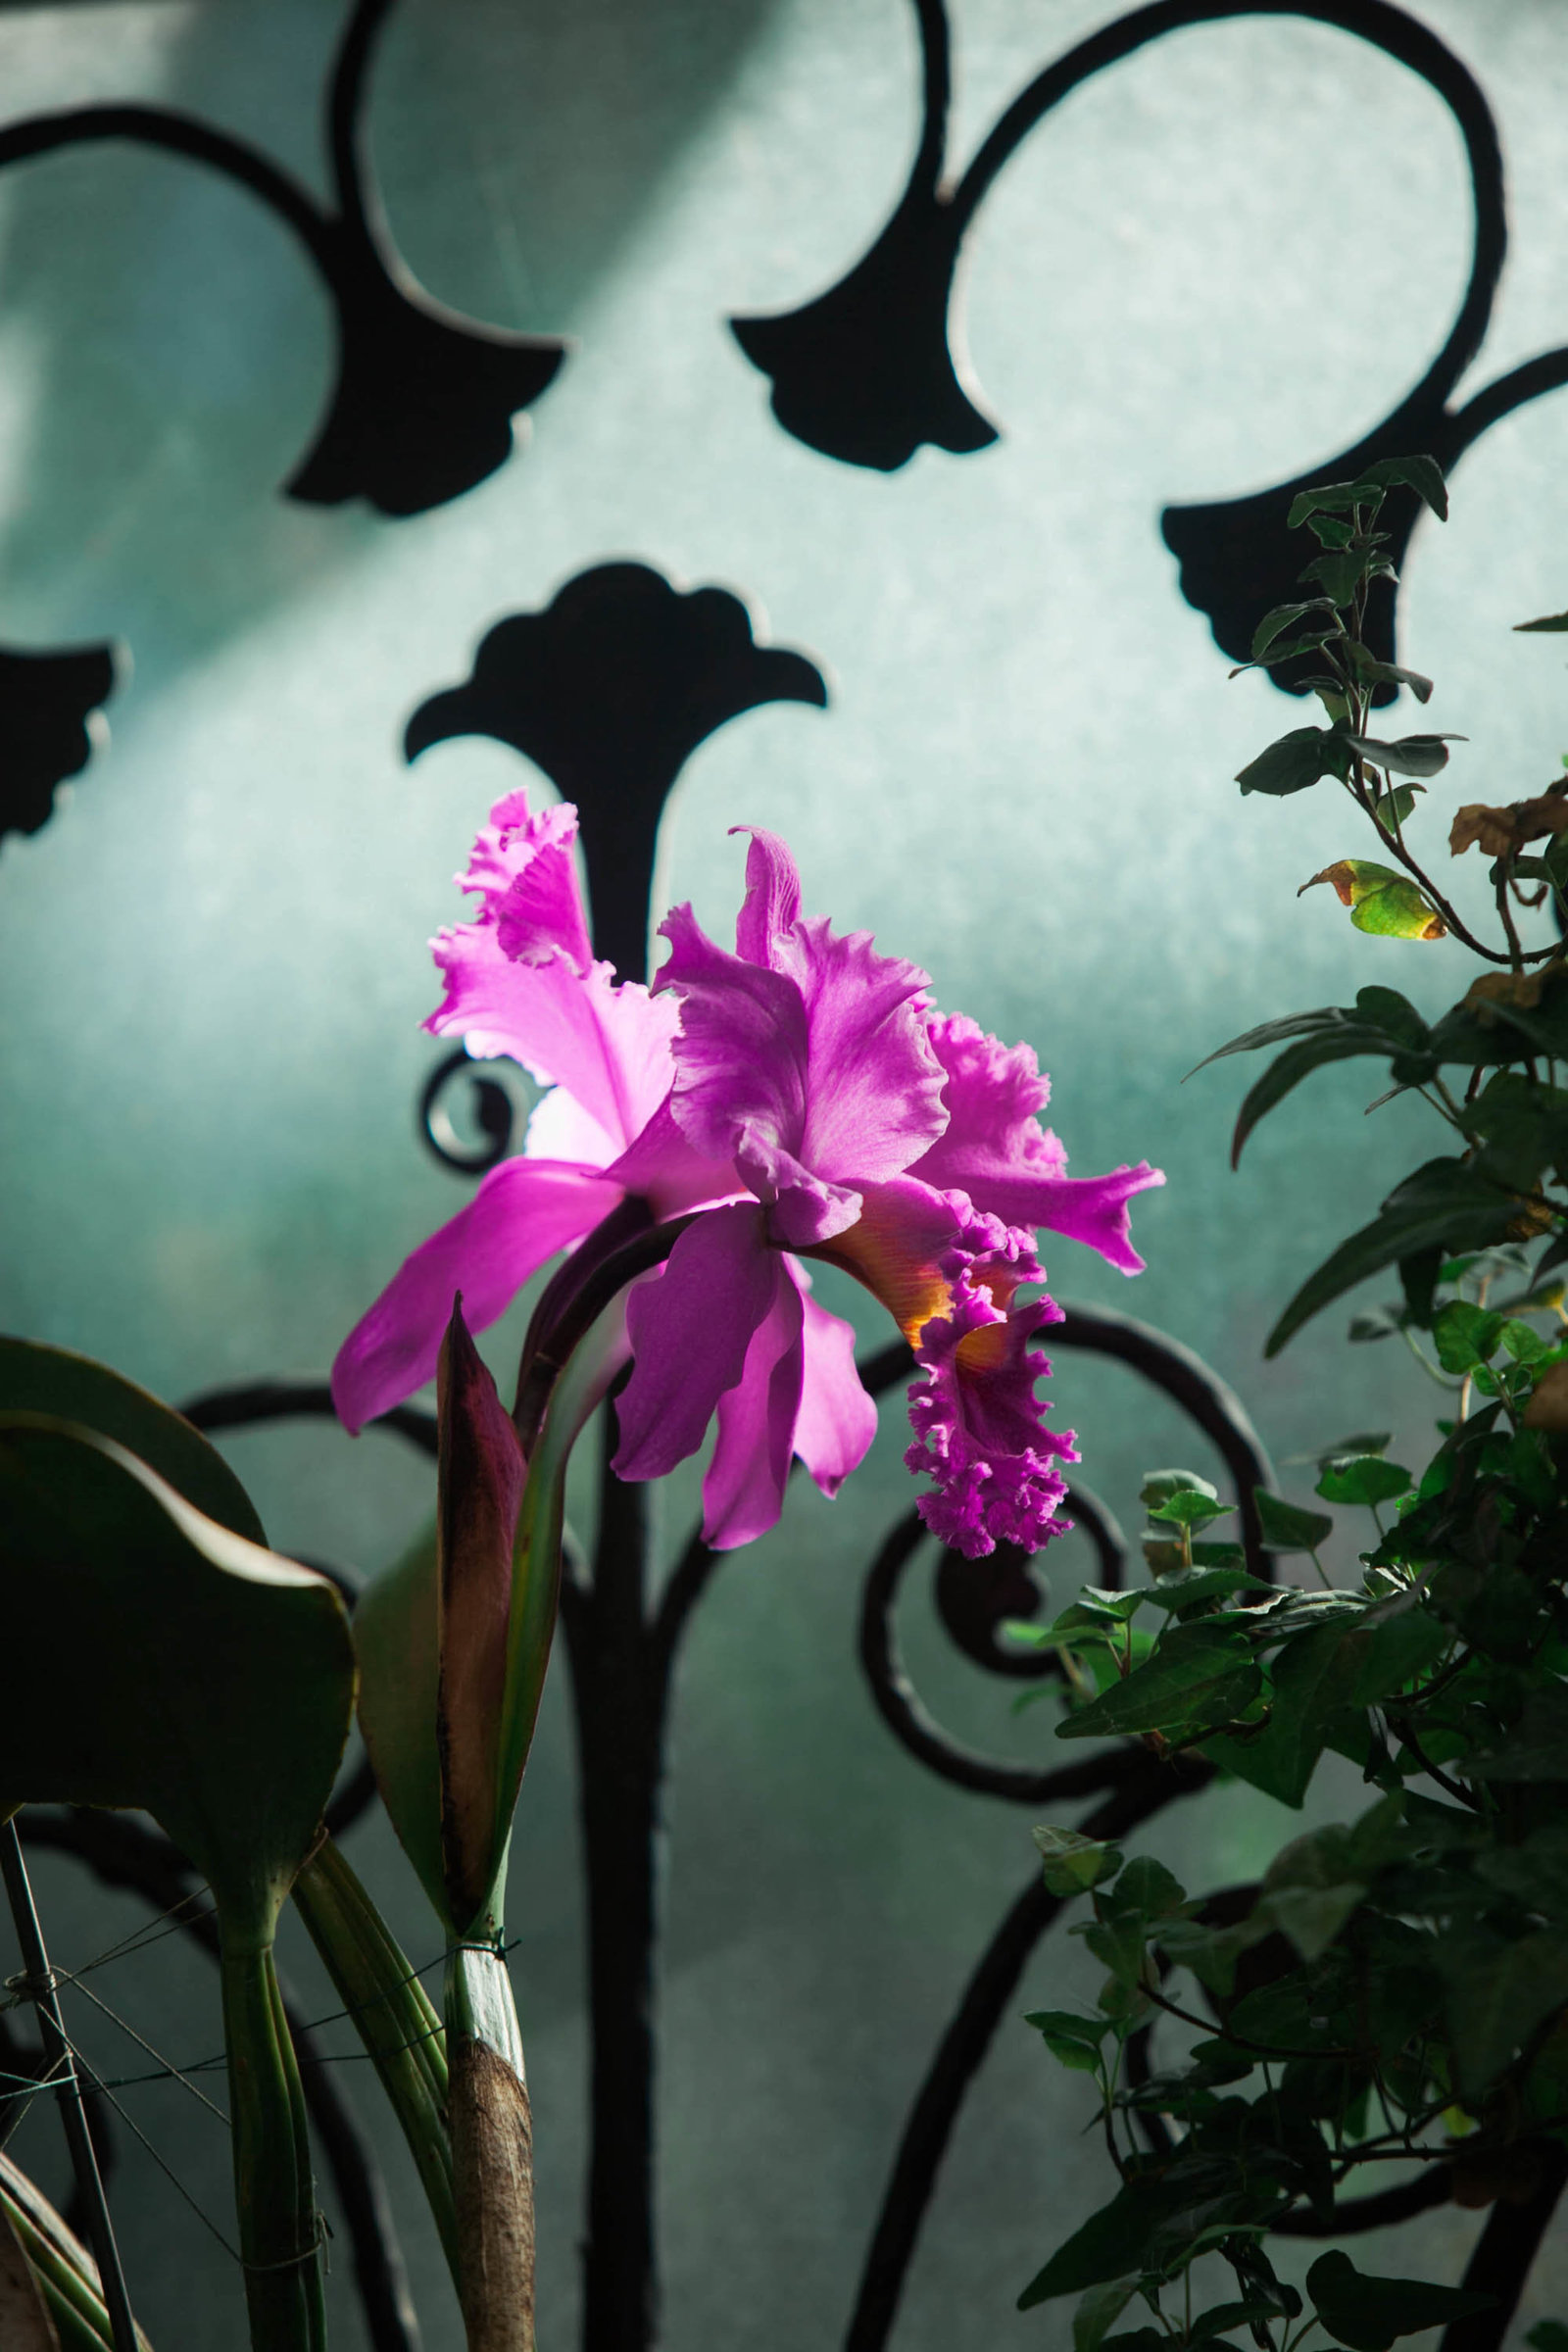 purple-orchid-flower-garden-pennsylvania-nature-kate-timbers-photography-1416